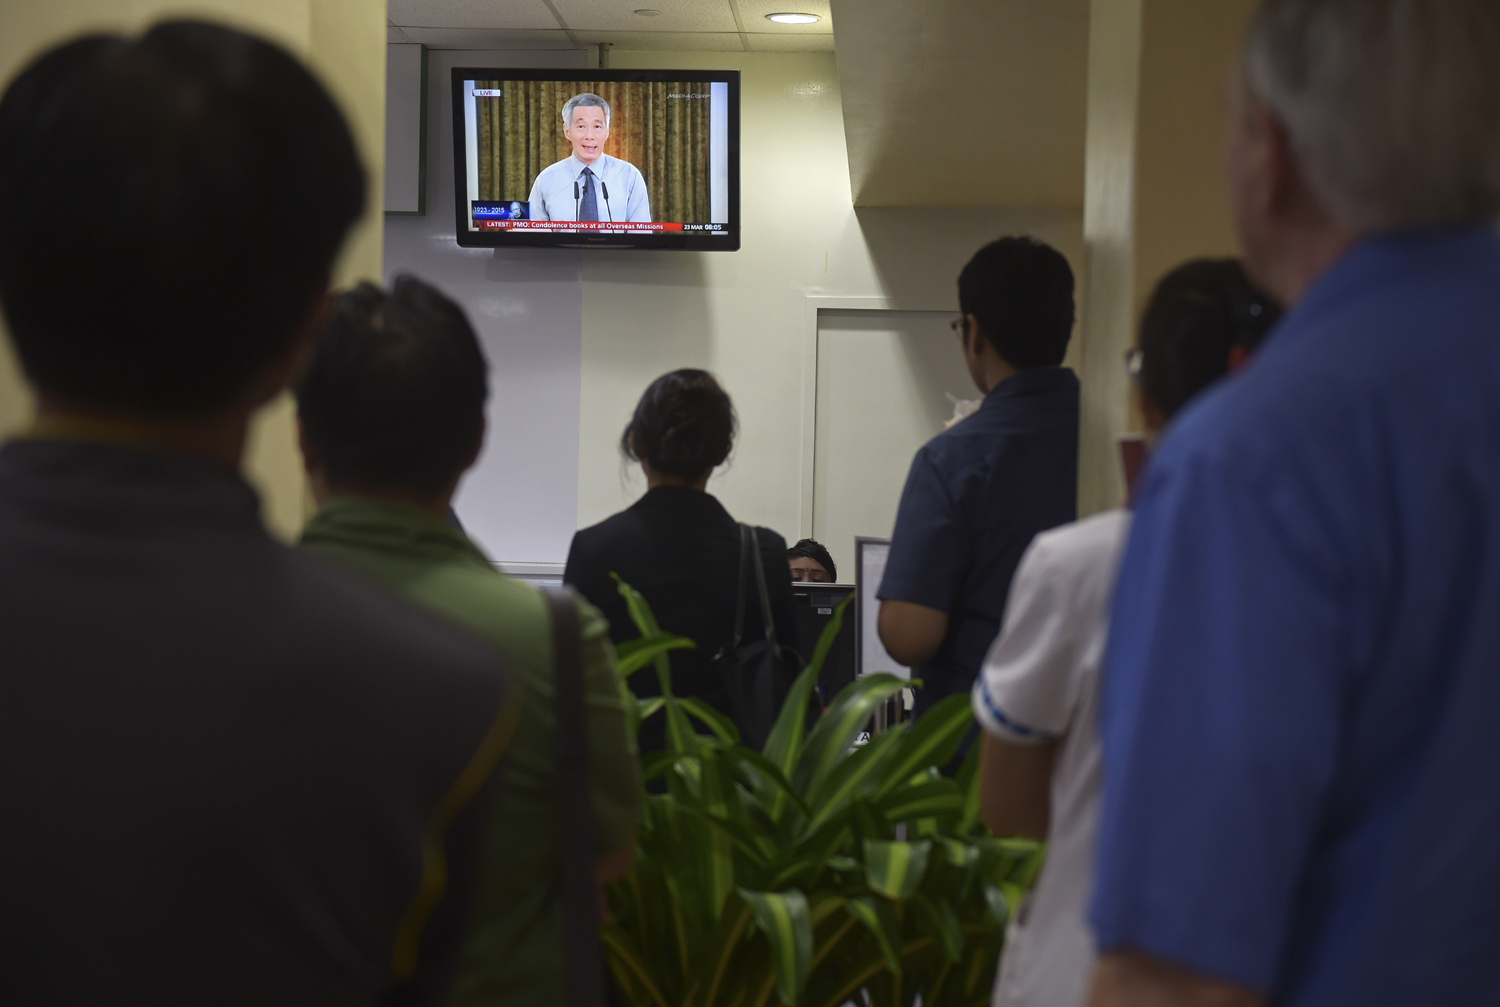 A live broadcast by Singaporean Prime Minister Lee Hsien Loong on the death of his father is watched in a reception area at a hospital where the city-state's first Prime Minister Lee Kuan Yew passed away on March 23, 2015, in Singapore